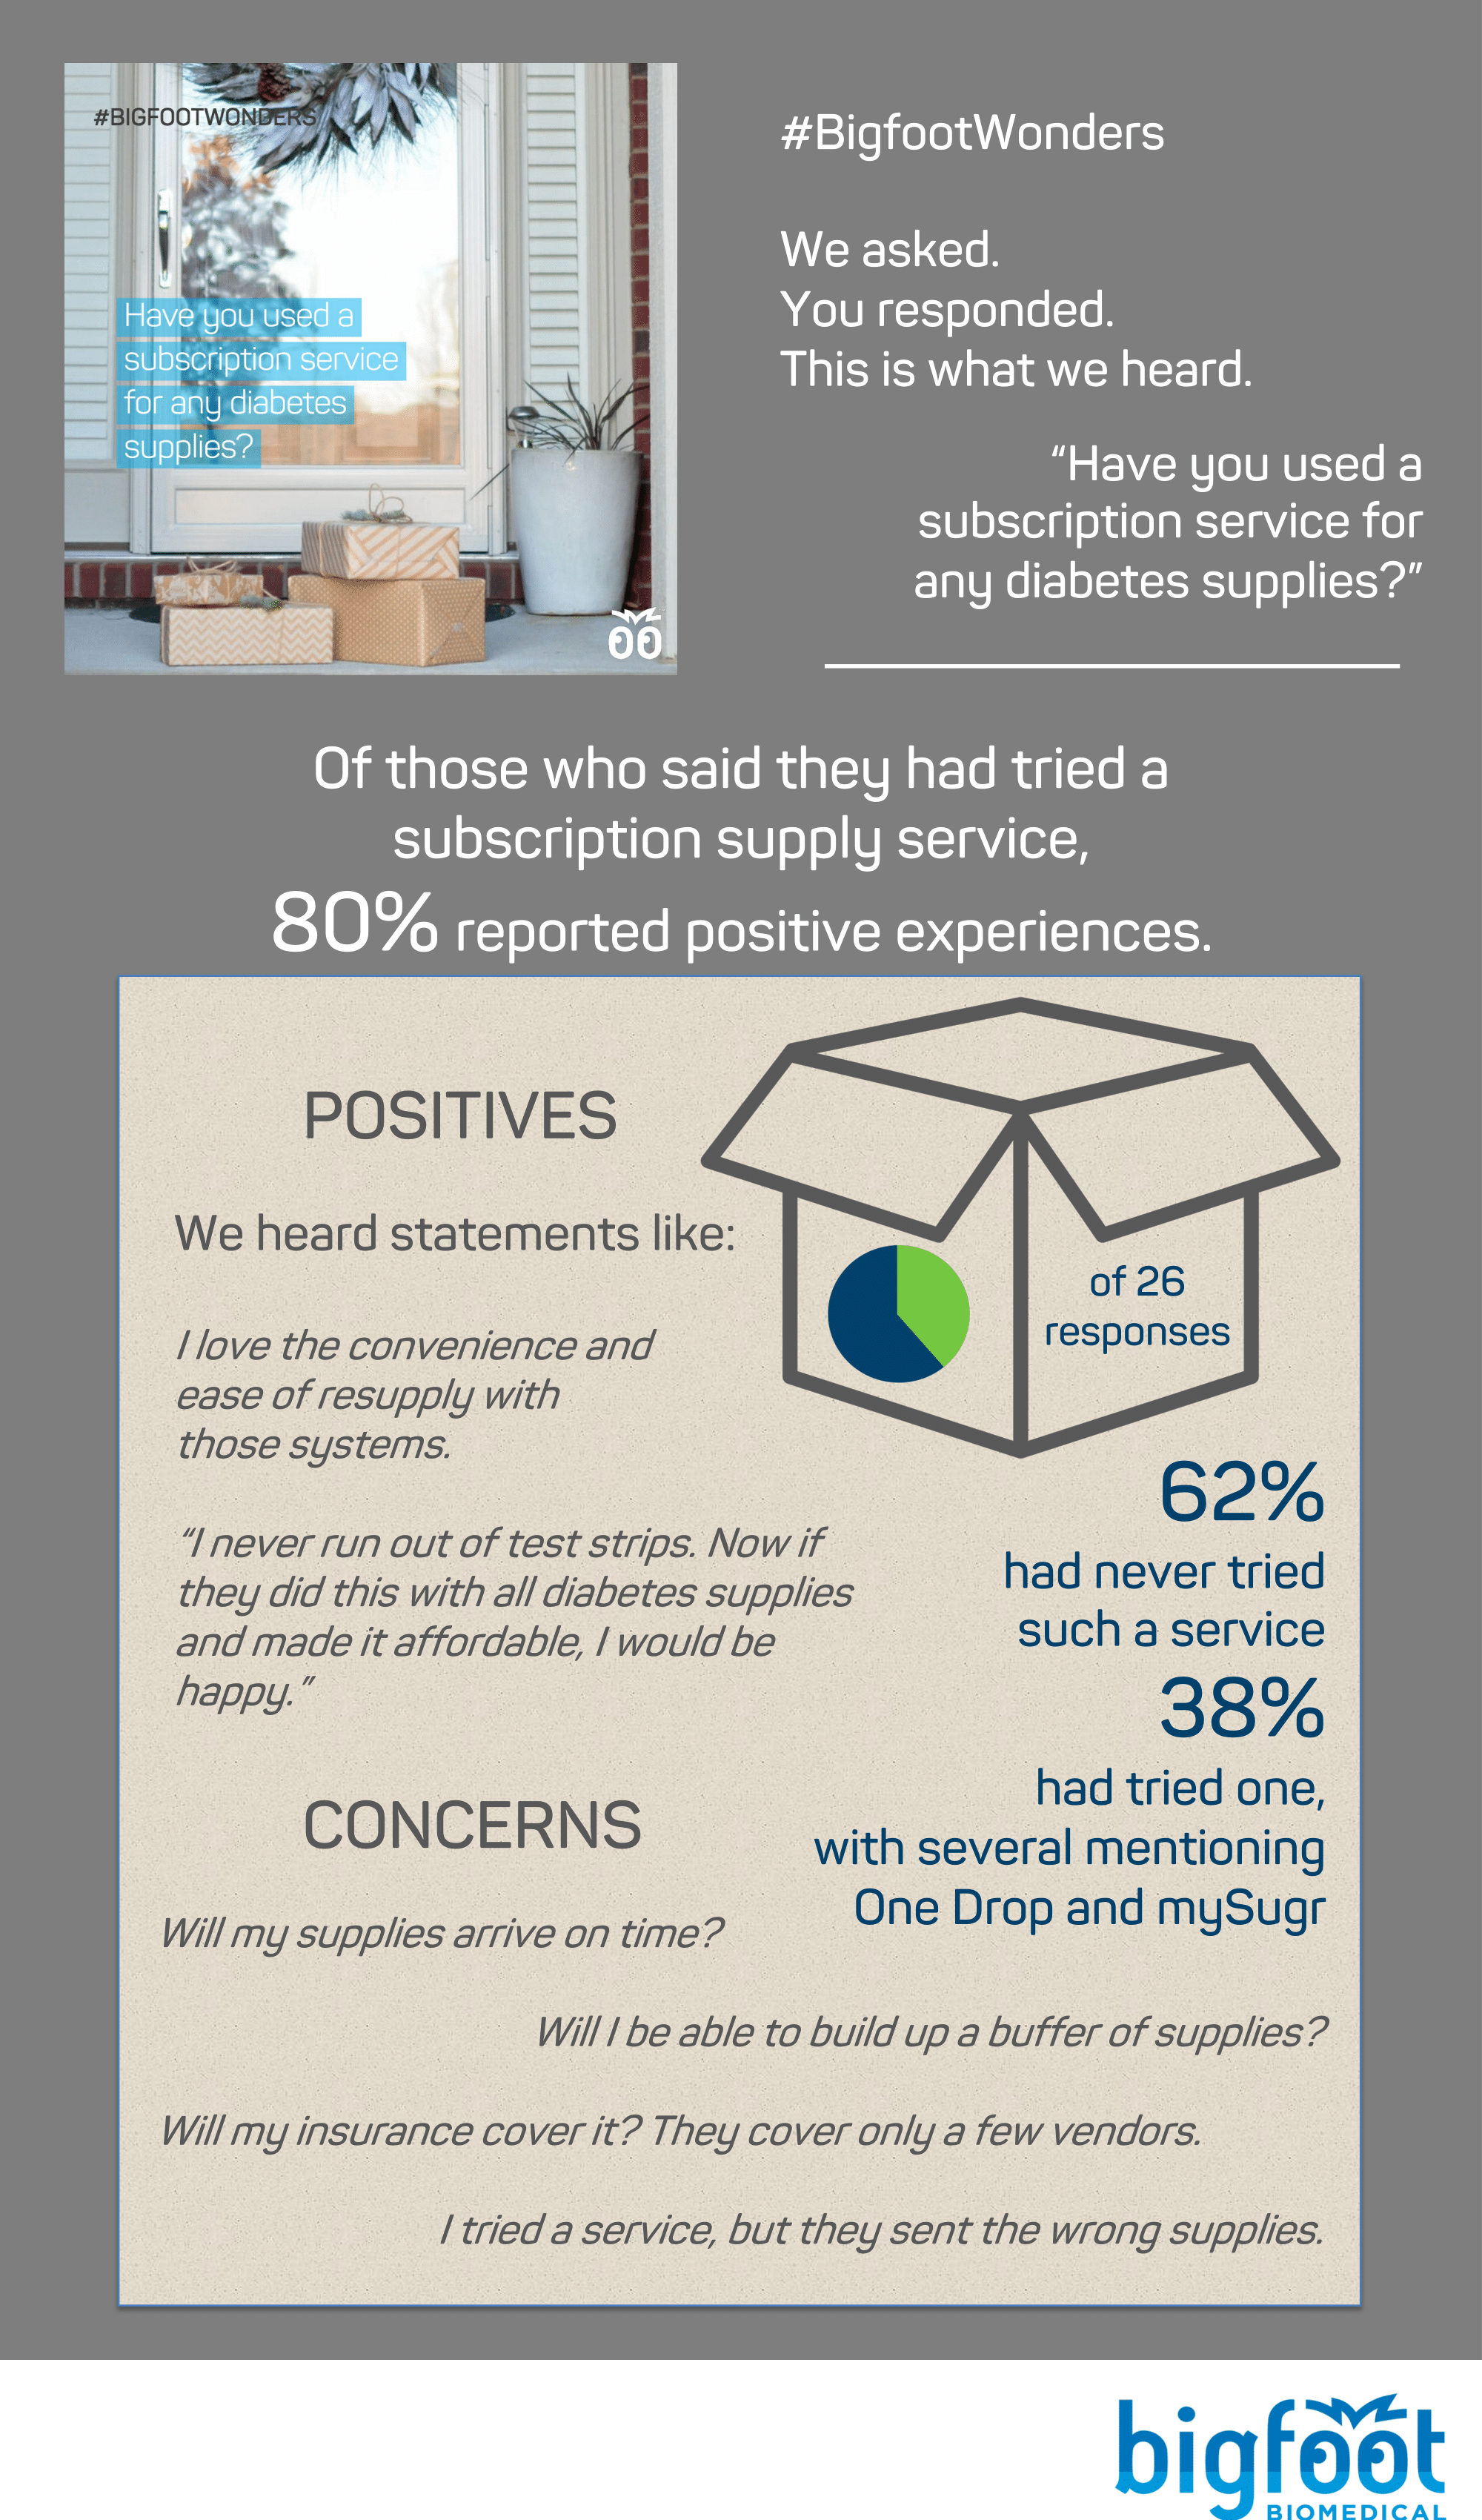 62% had not tried such a service, but of the 38% who had, 80% reported positive experiences.